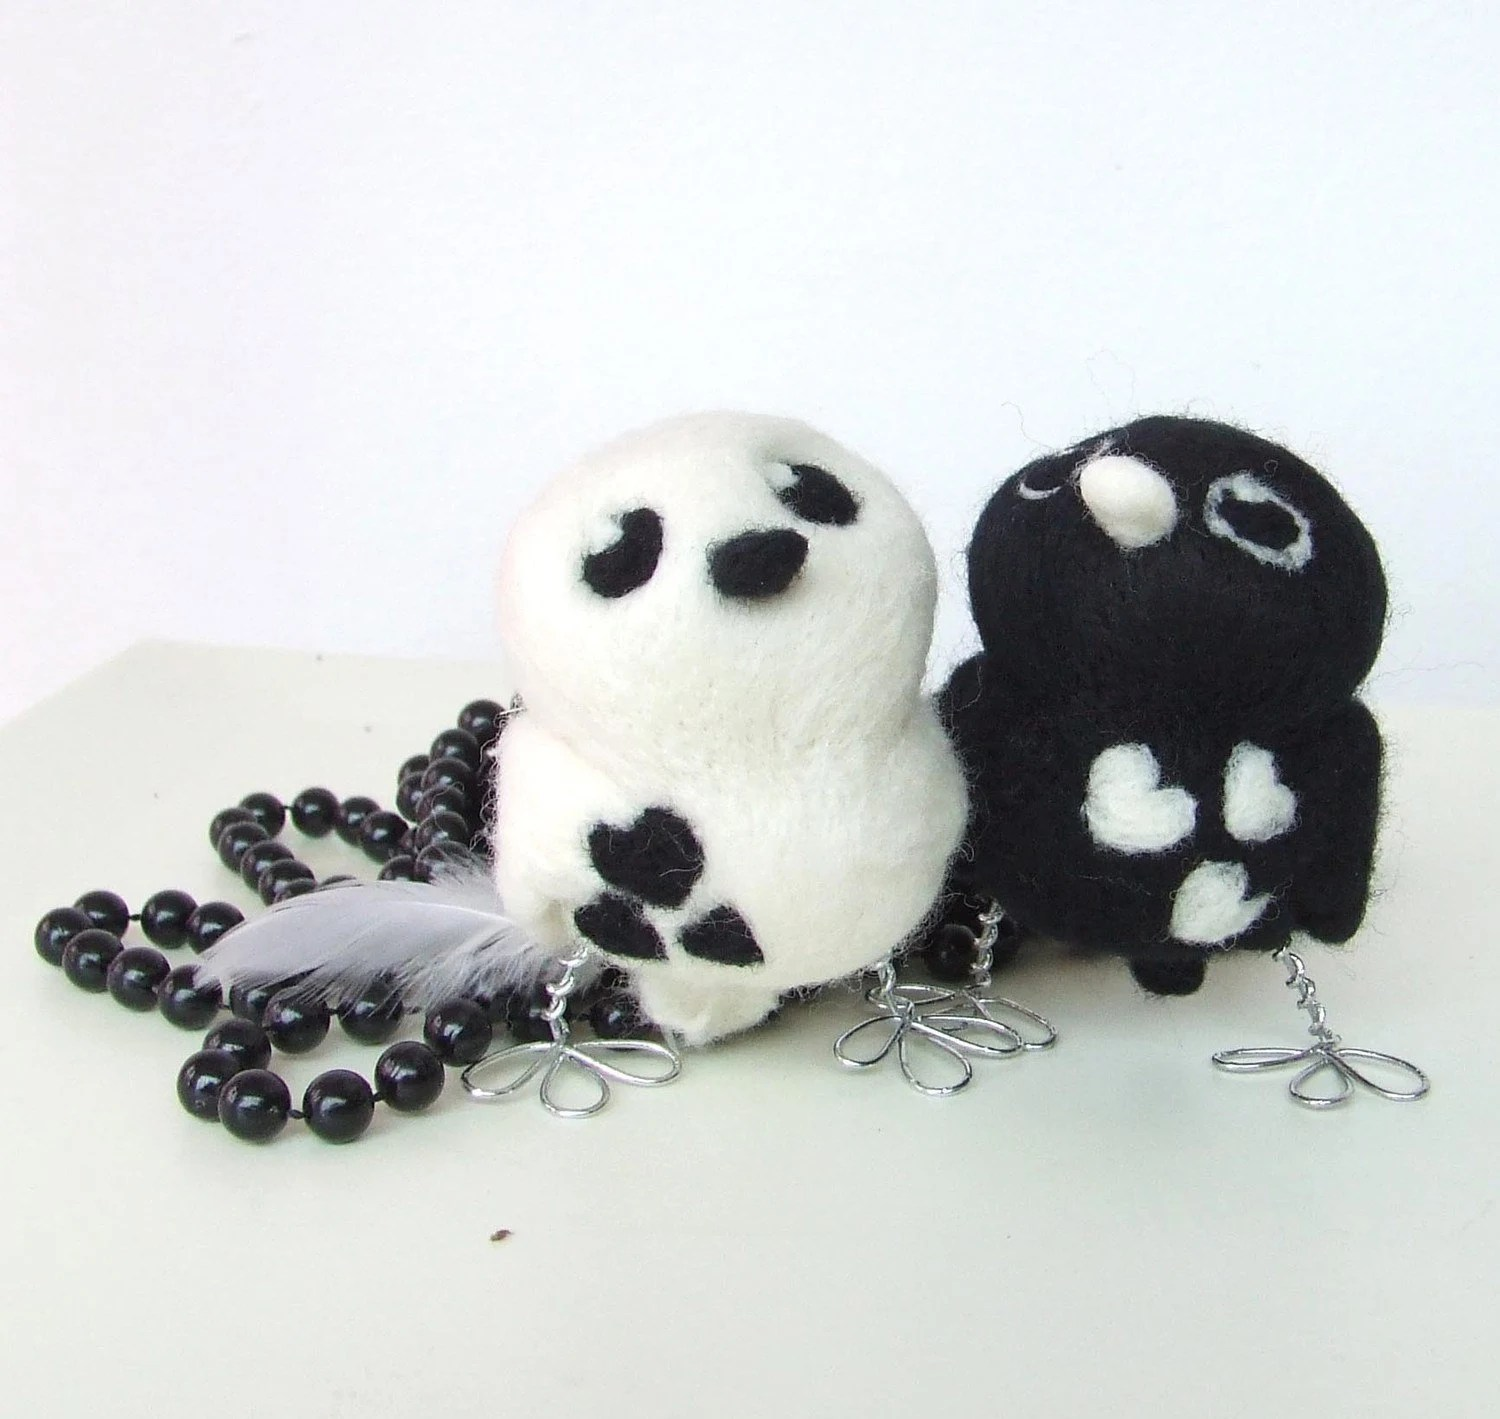 Monochrome Opposites Black and White Tweet Needlefelted Wedding Cake Topper with Silver Legs